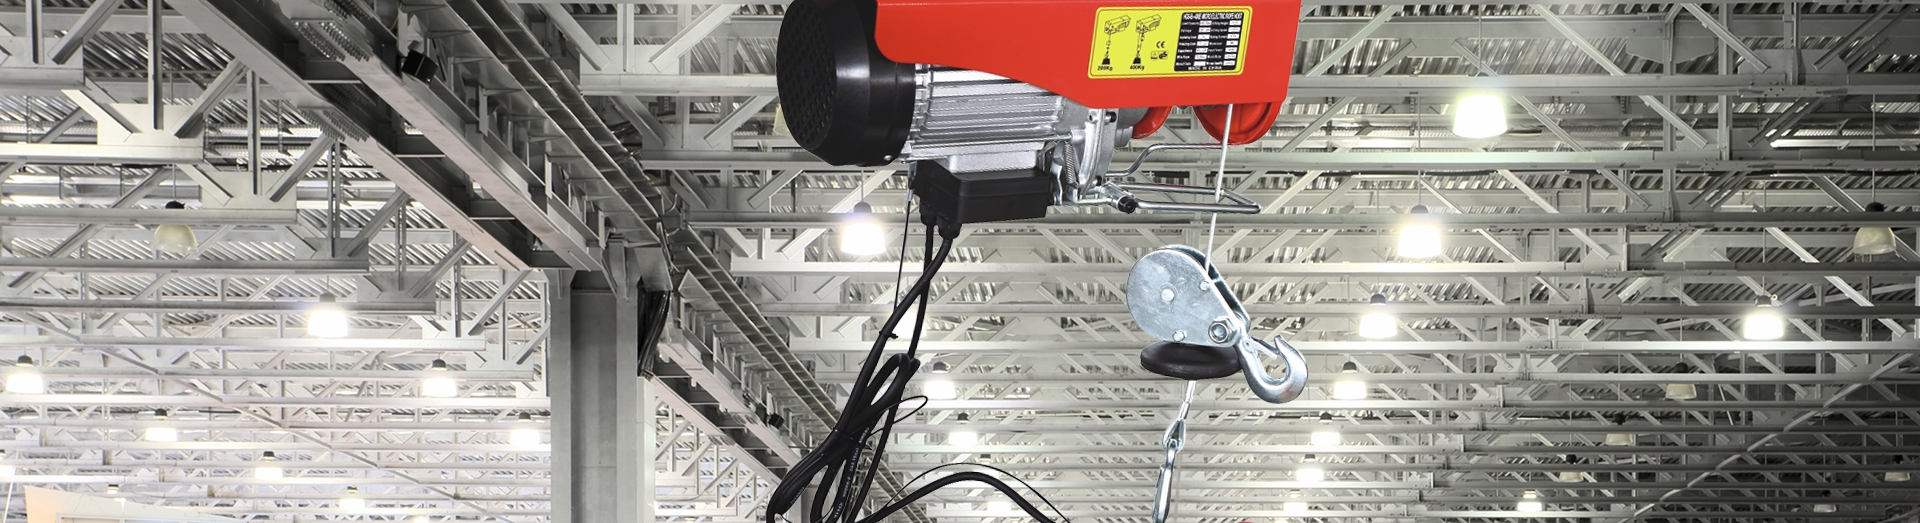 Electric Hoist & Windl,Electric Forklift & Stacker,Money ... on hoist system, contactor diagram, electric pallet jack diagram, ac disconnect diagram, manual pallet jacks diagram, hoist switch diagram, electric chain hoist control diagram, hoist cover, hoist parts diagram,